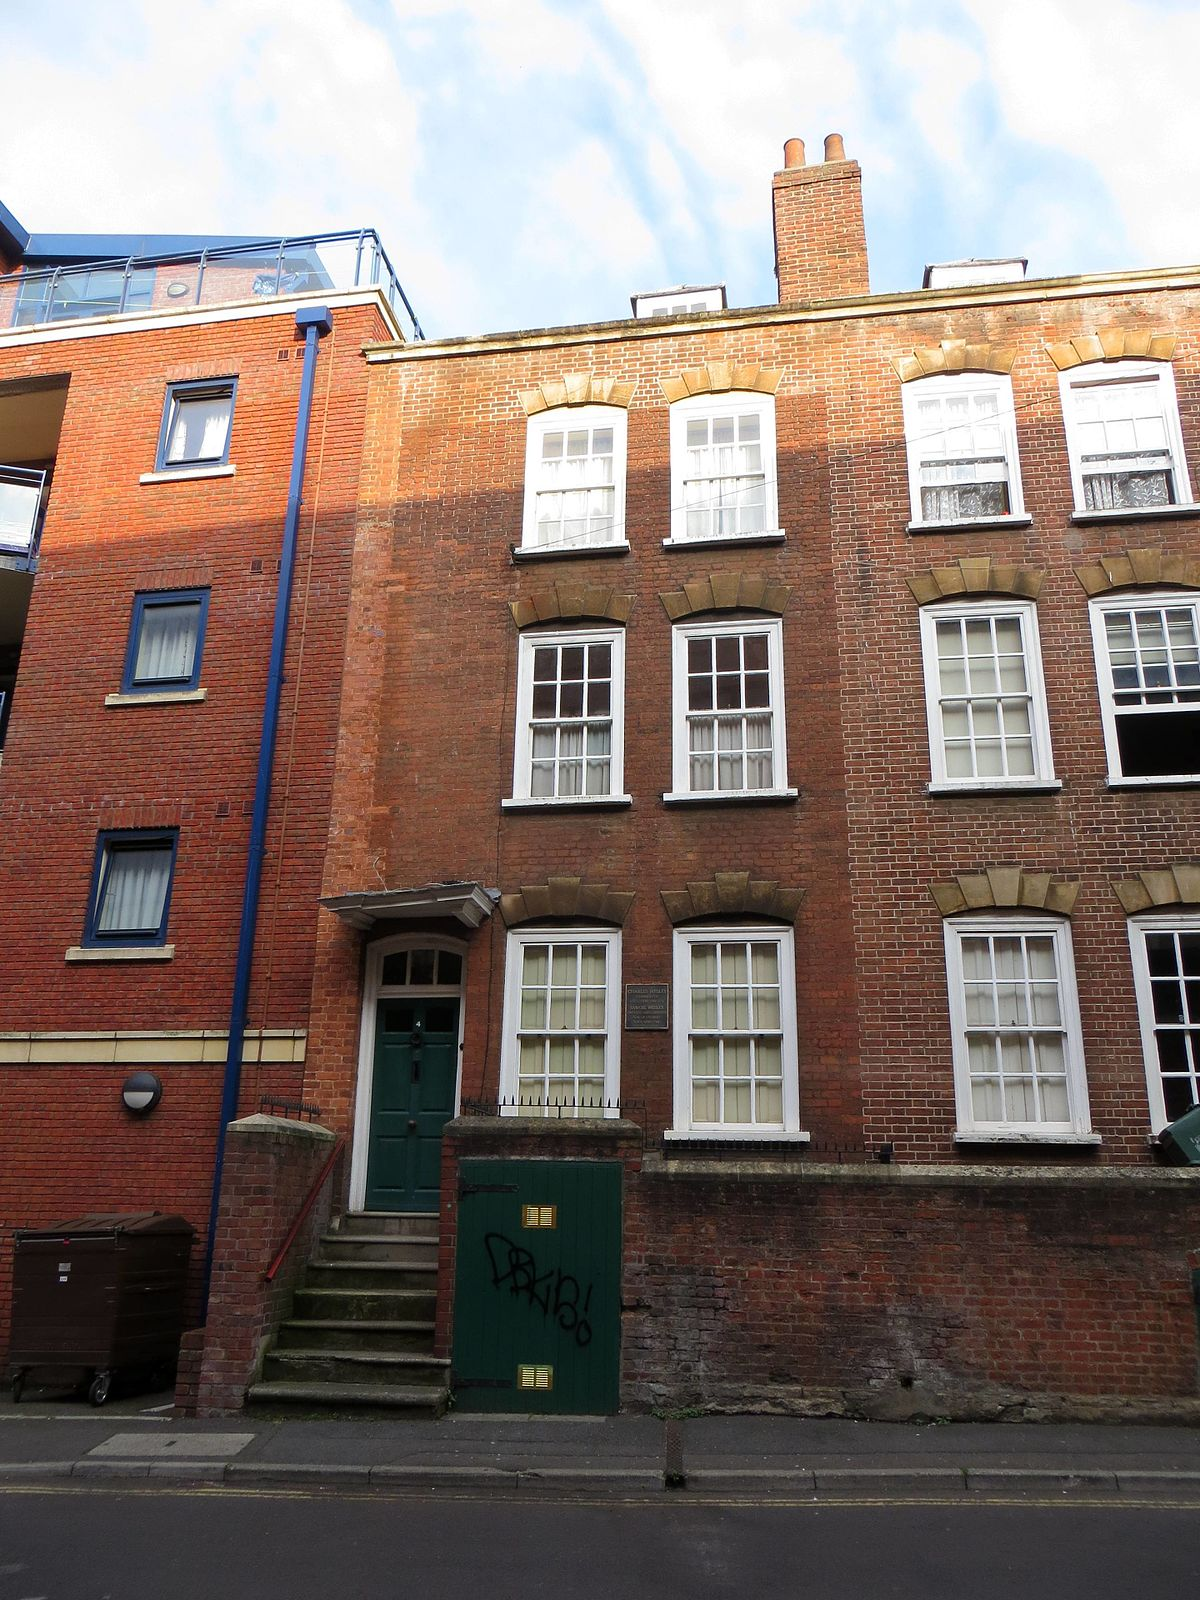 charles wesley 39 s house wikipedia